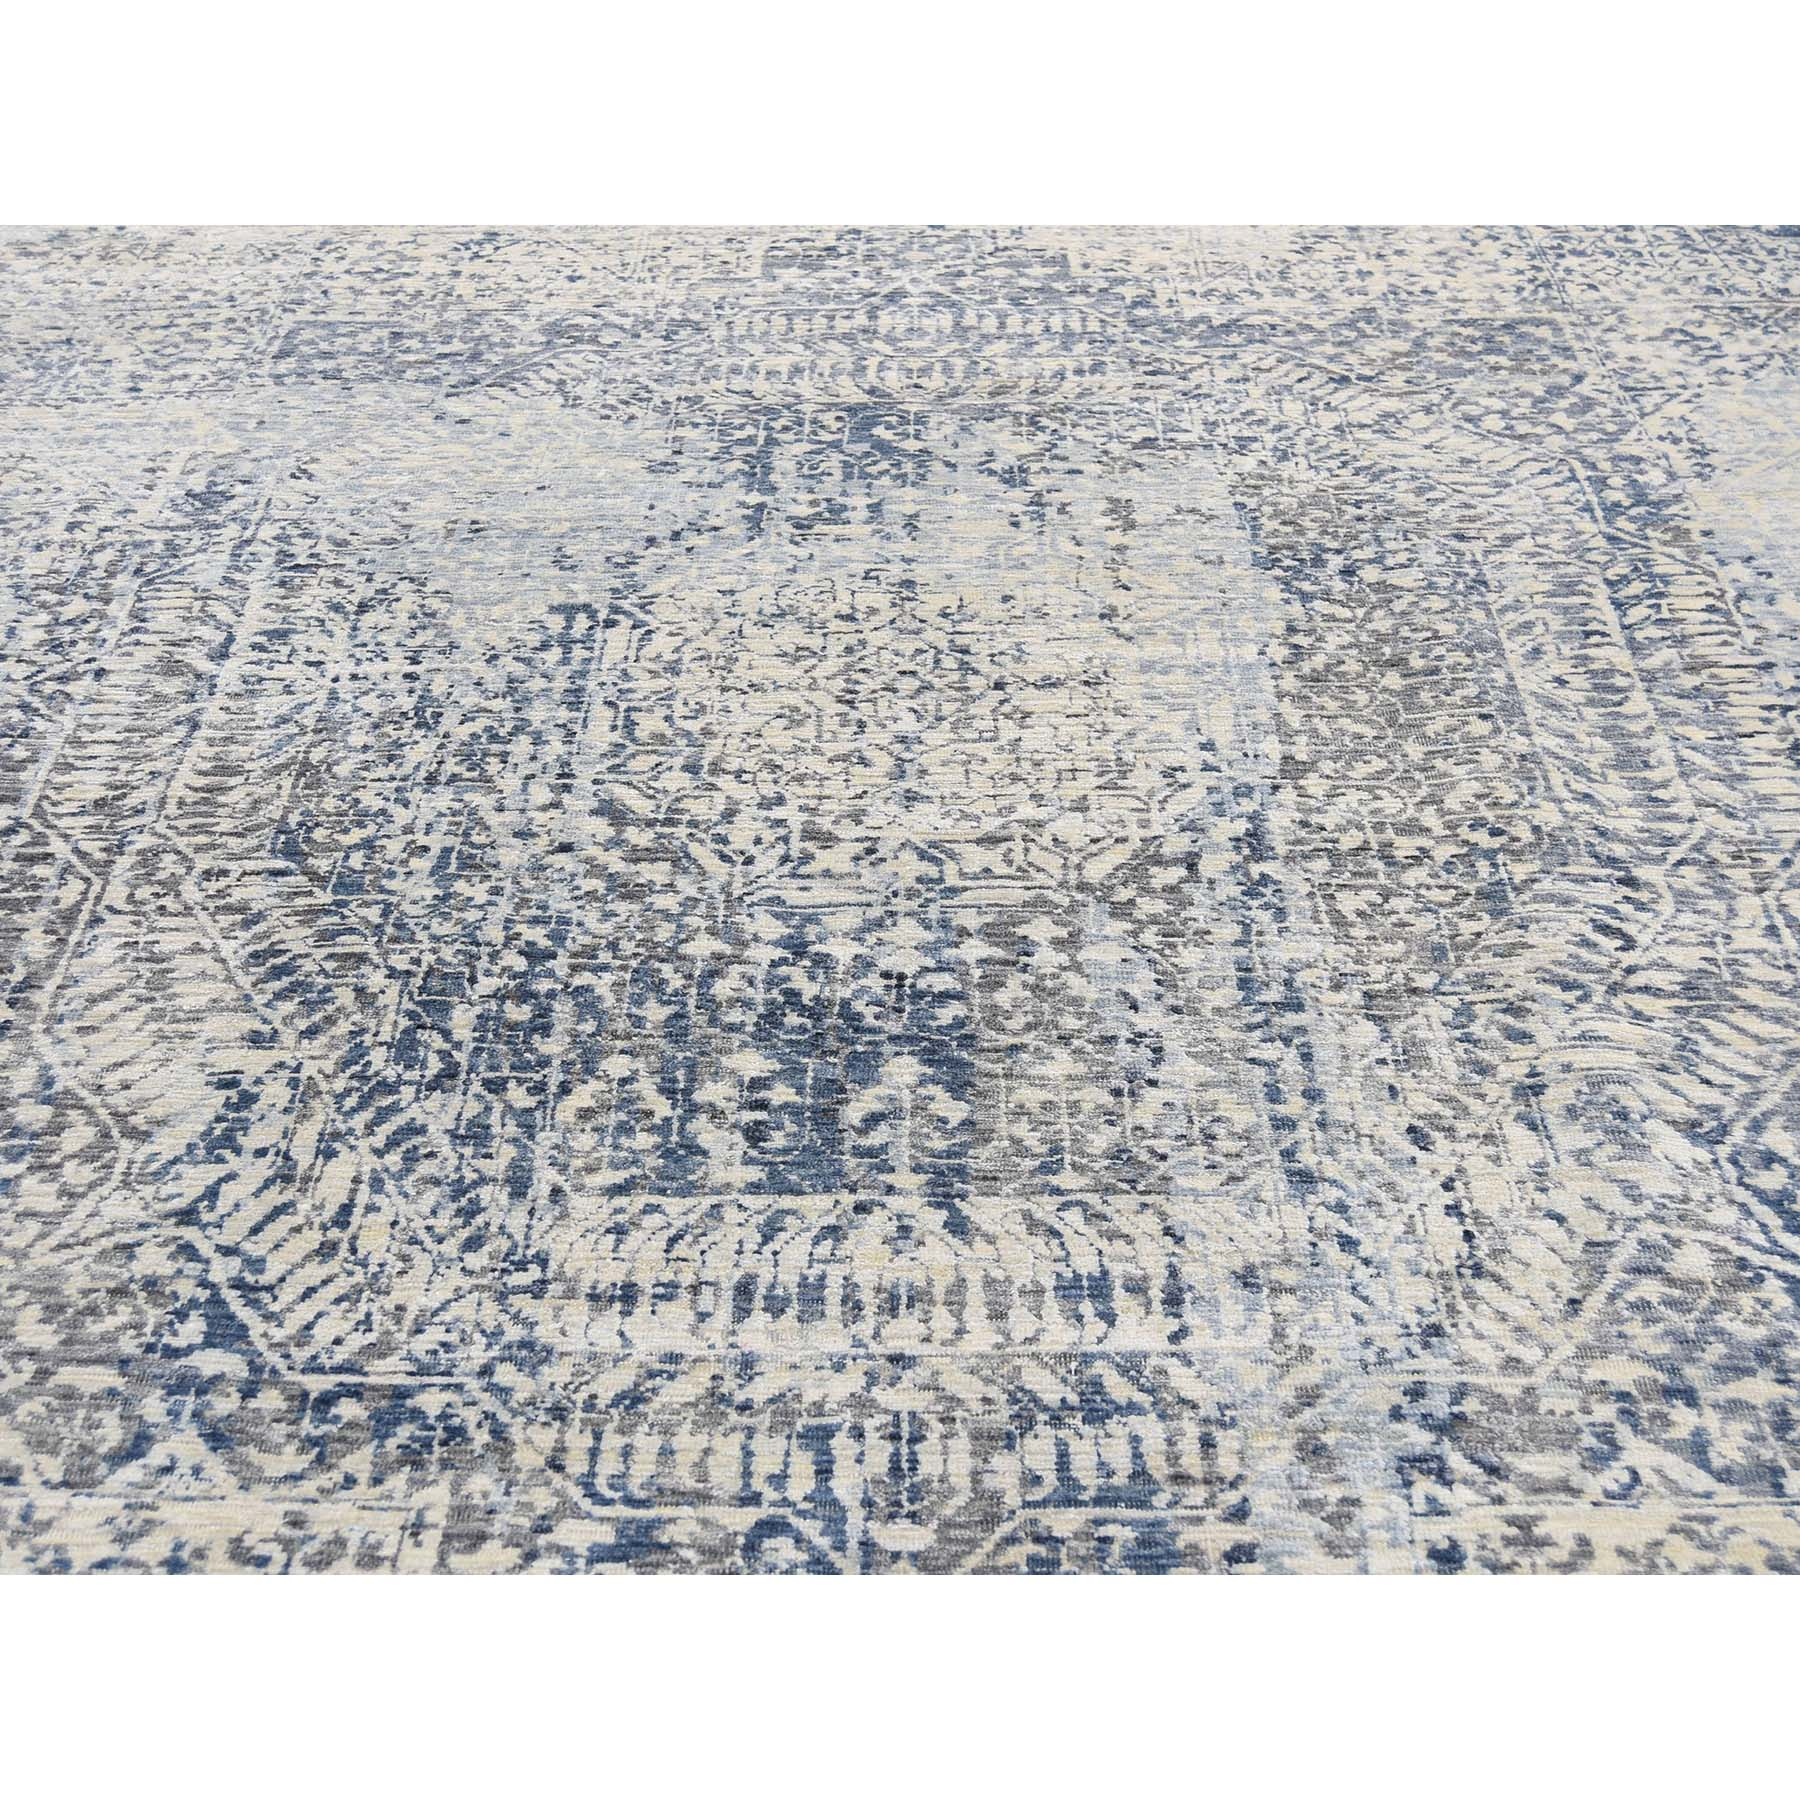 8-3 x10-2  Pure Silk With Oxidized Wool Vintage Hand Knotted Mamluk Rug